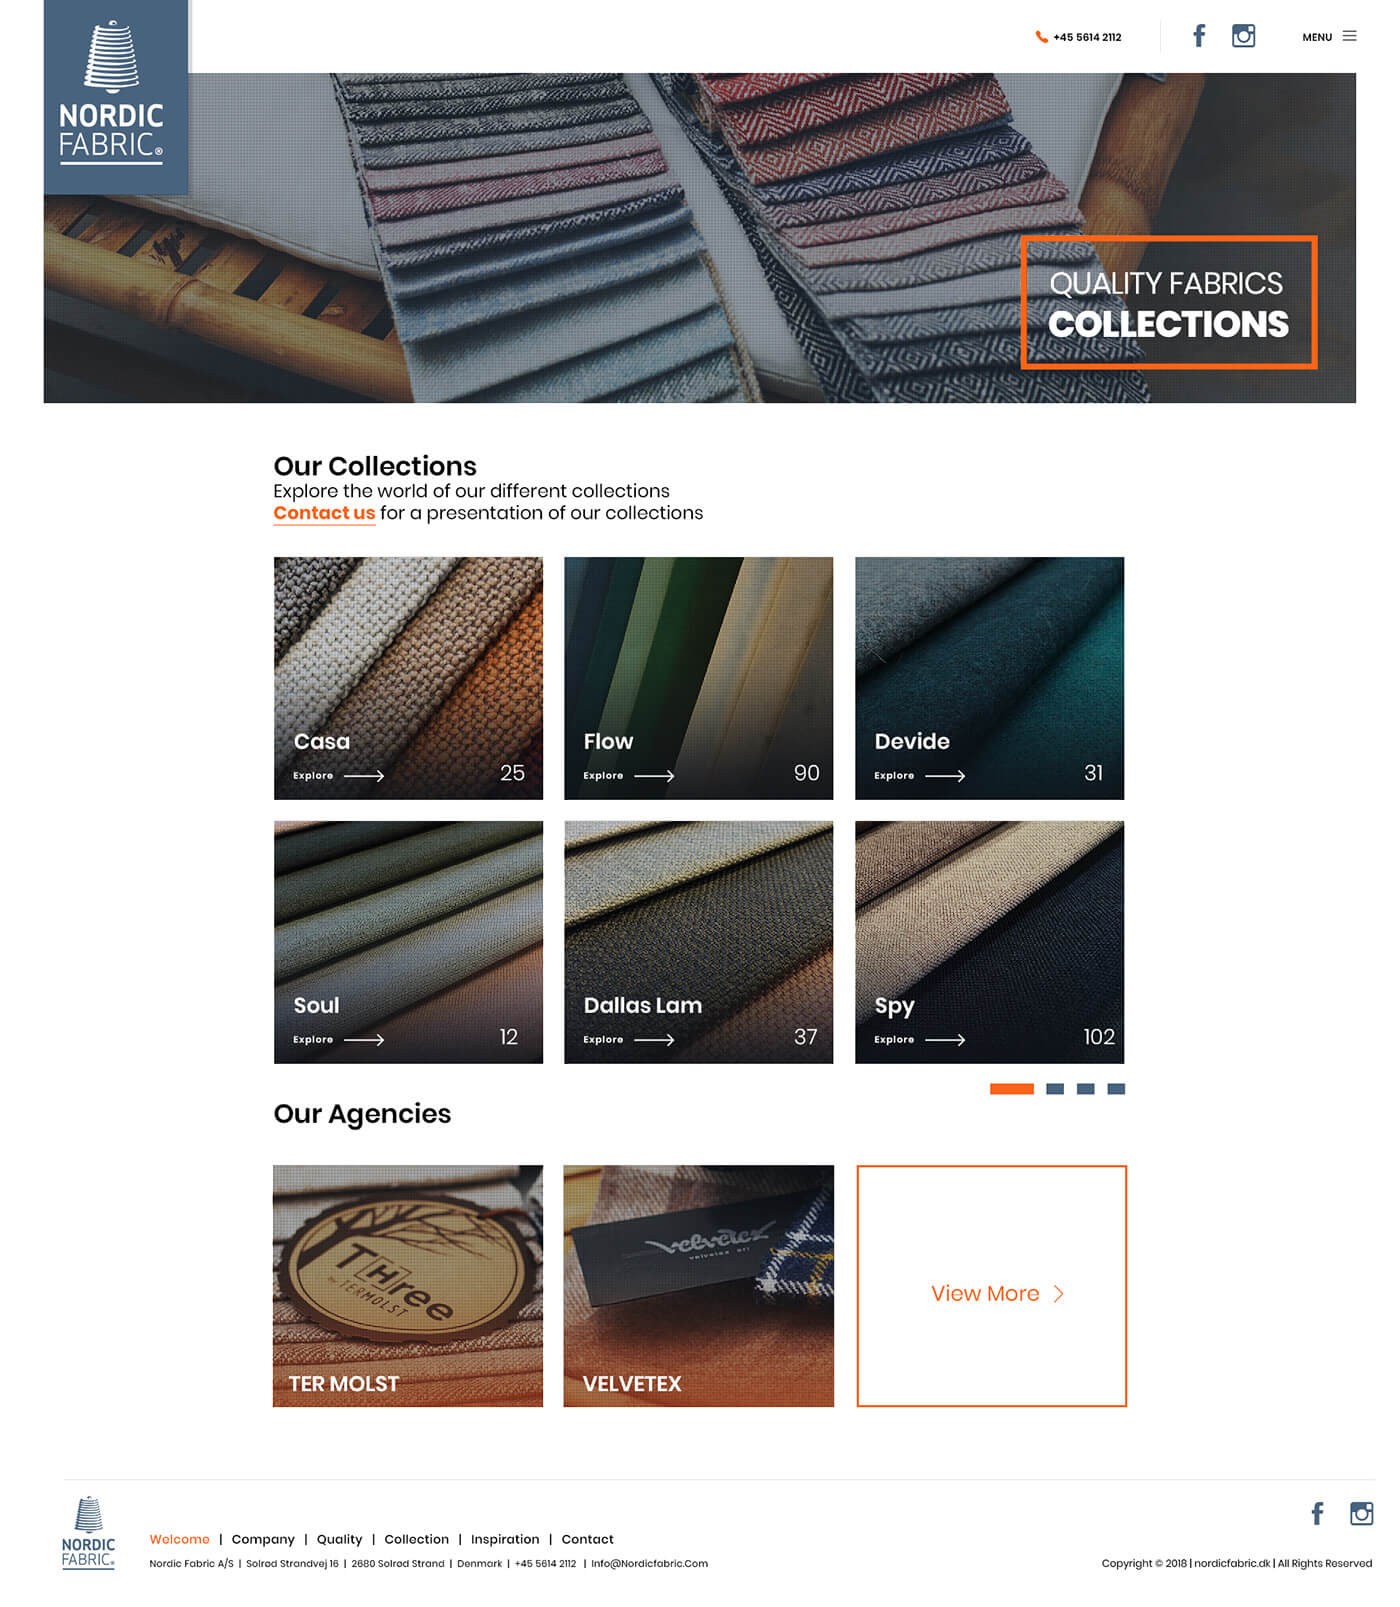 quality fabrics collection